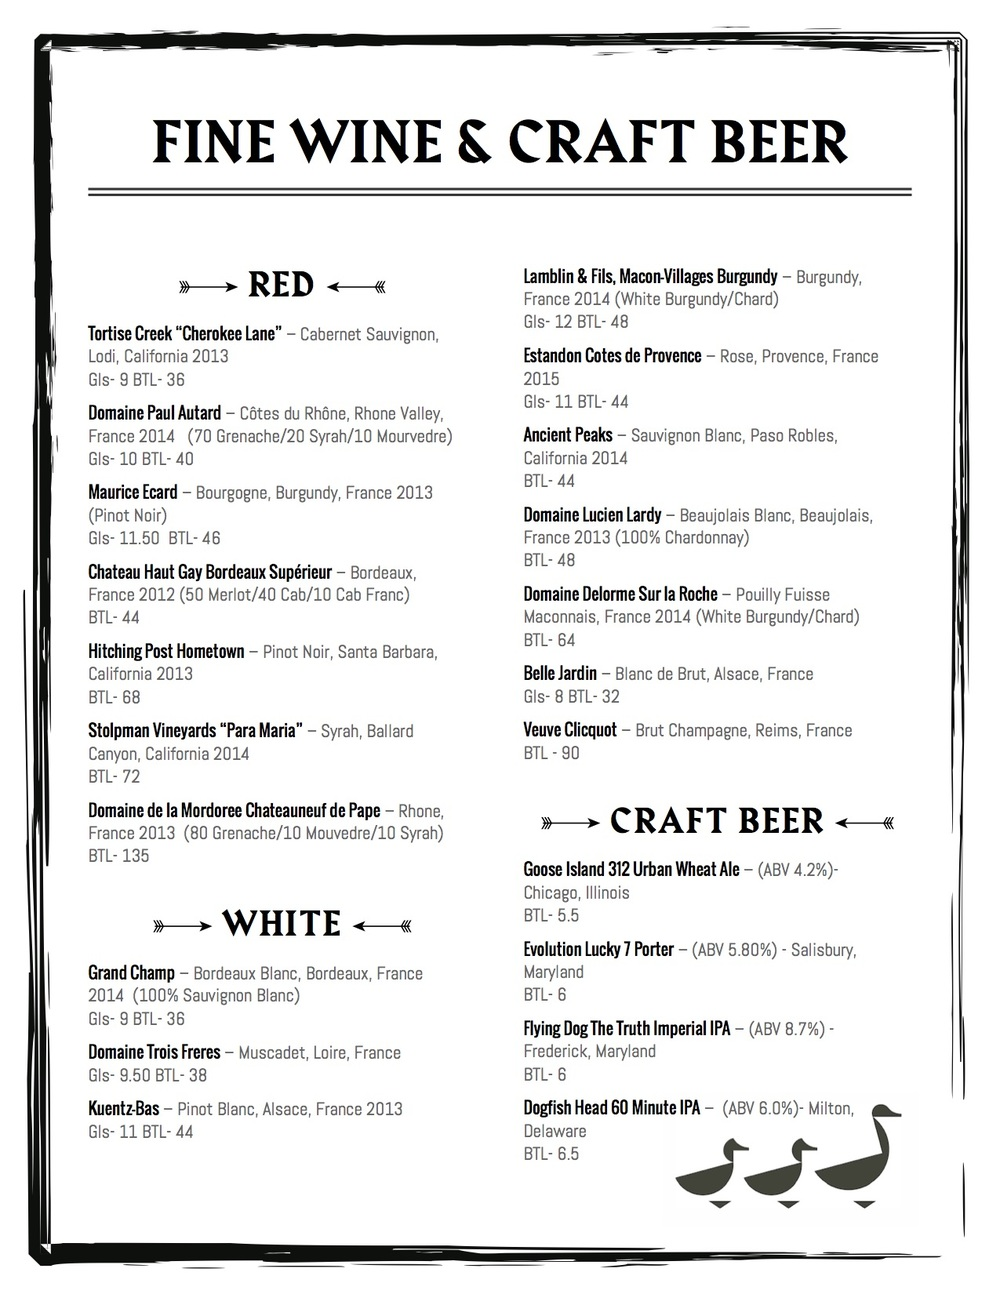 WineBeer Menu.jpg